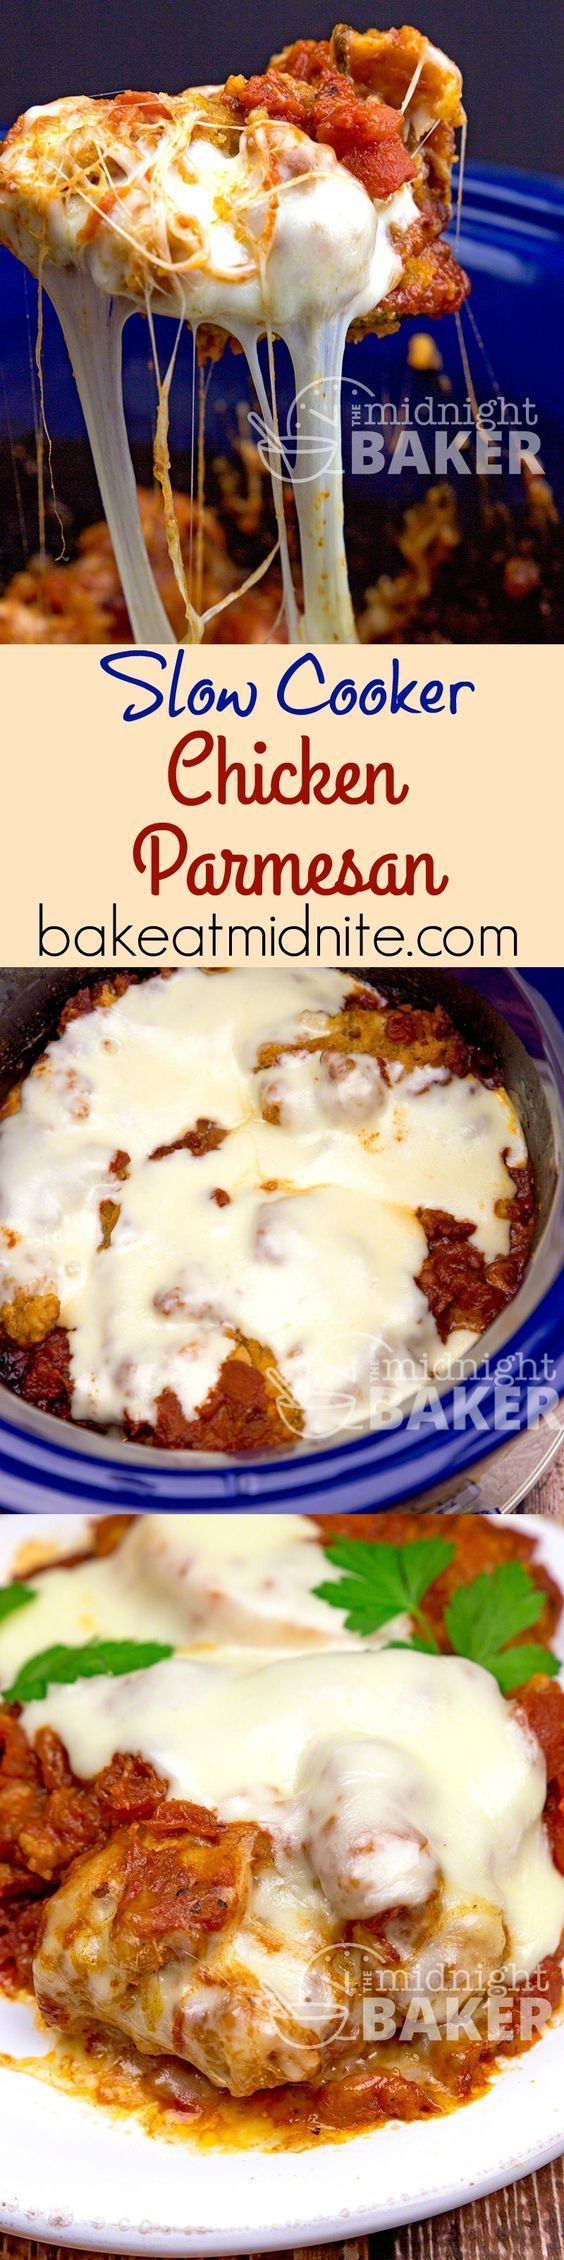 Chicken Parmesan - Bariatric Slow Cooker